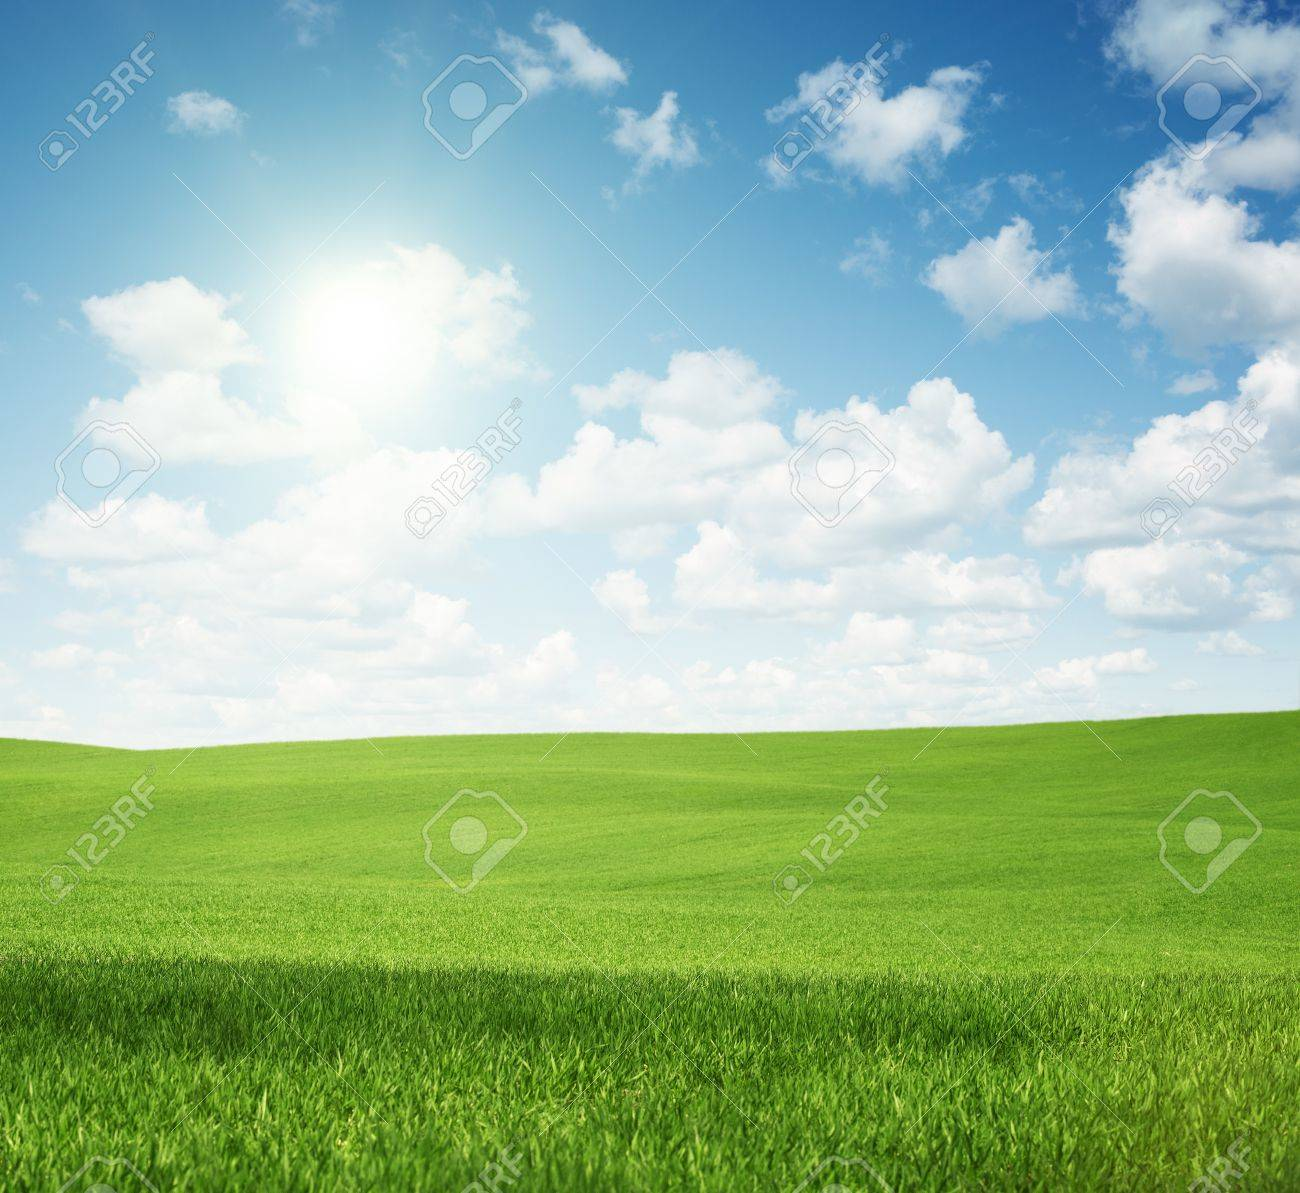 Rural landscape, empty green field with copy space - 20275194